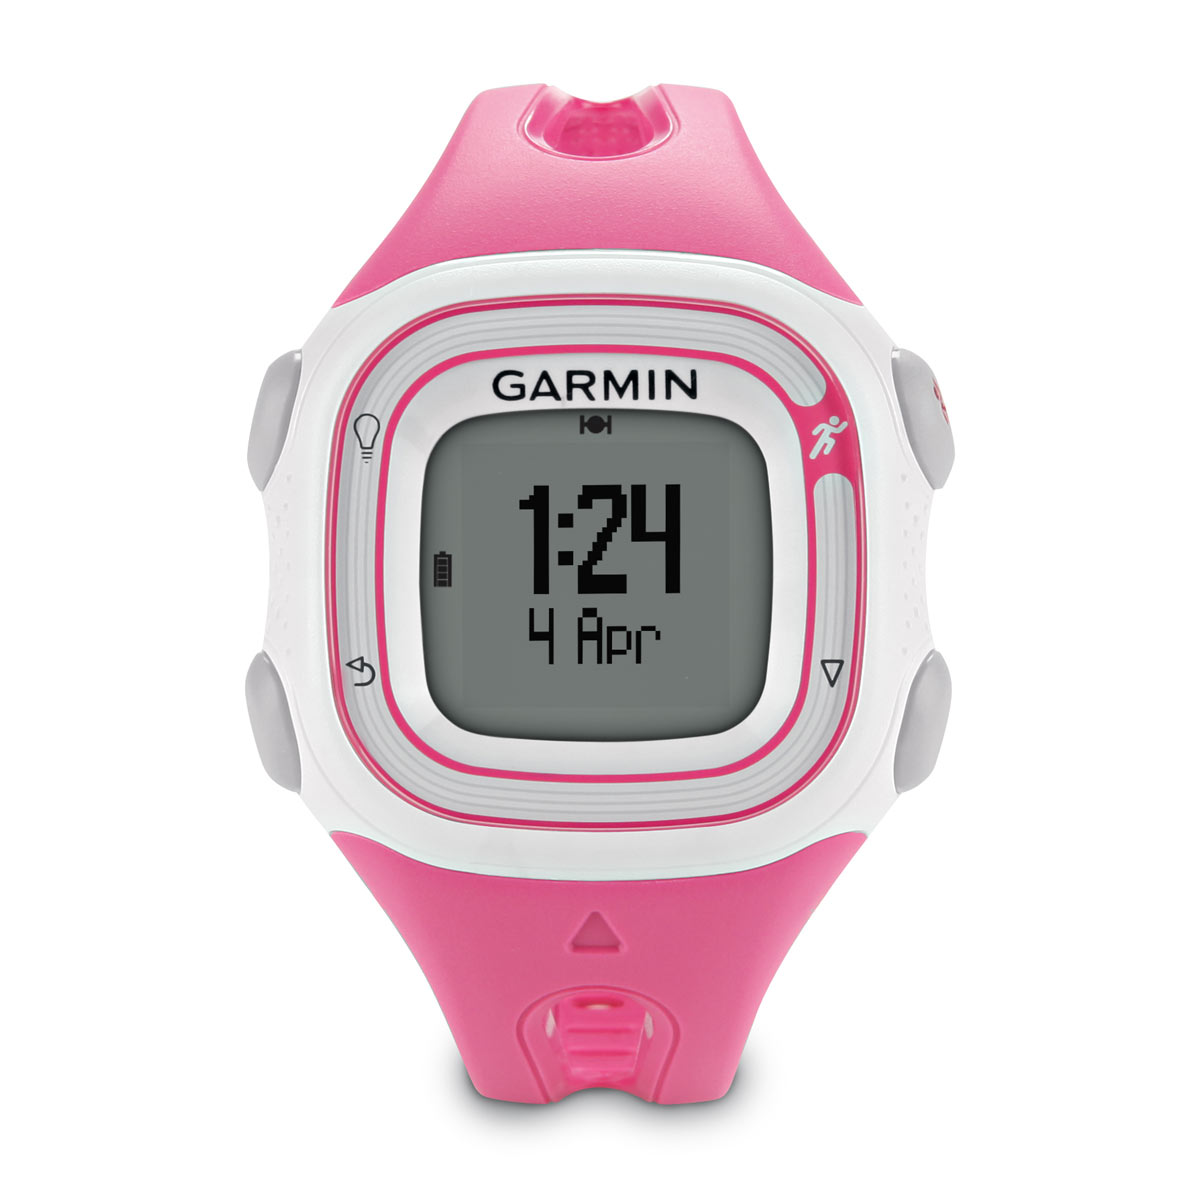 garmin forerunner 10 montre running garmin sur. Black Bedroom Furniture Sets. Home Design Ideas